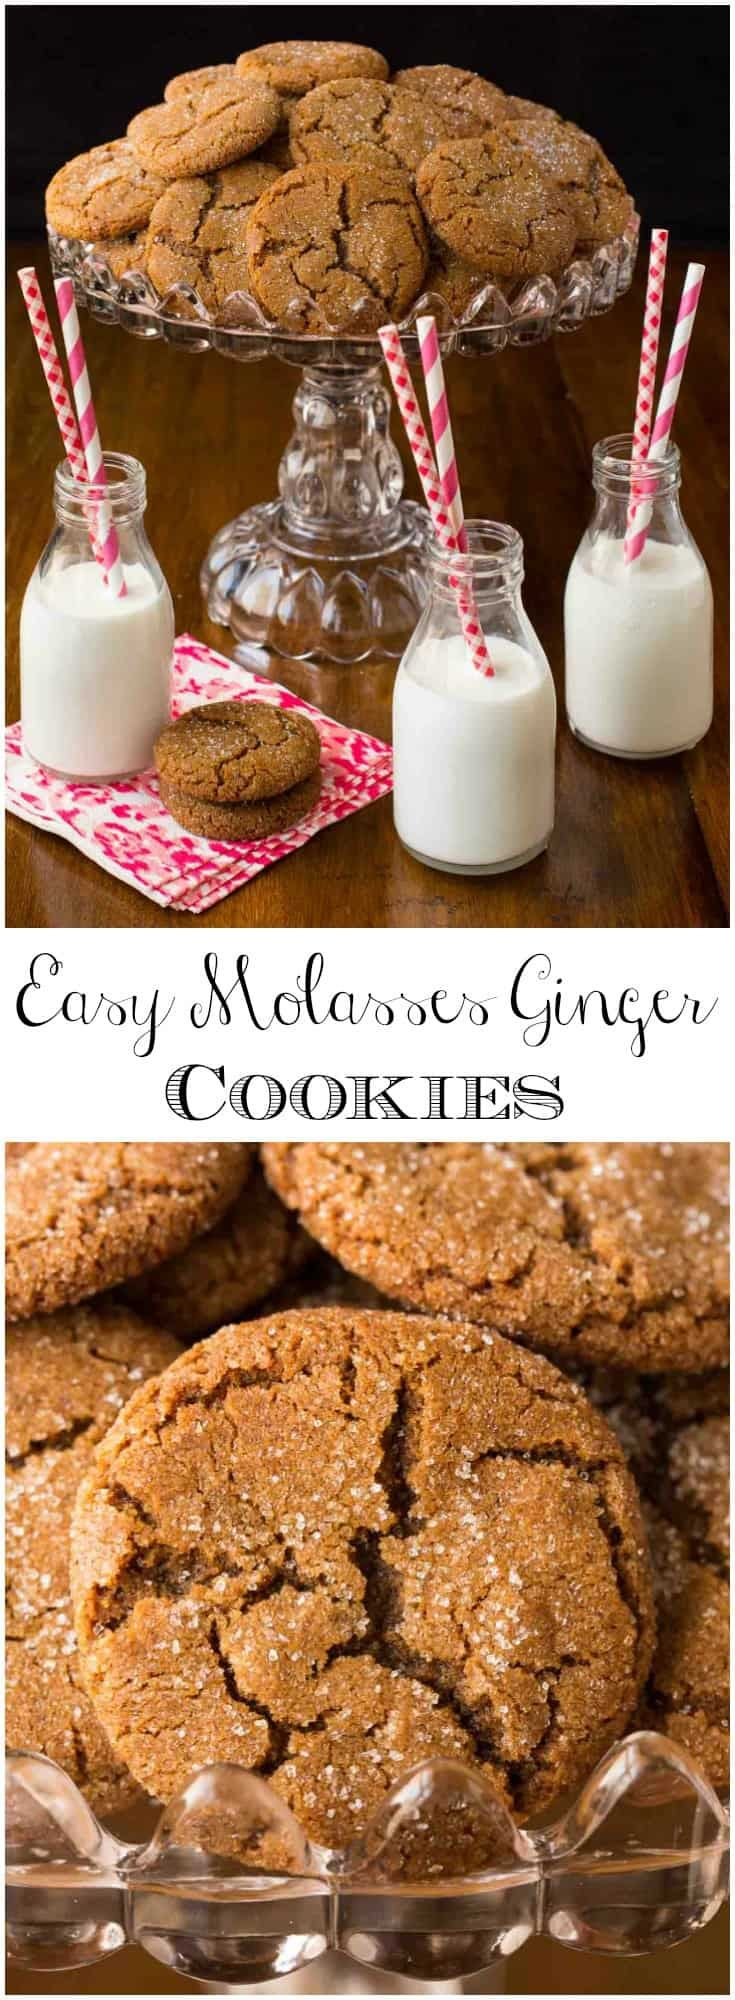 If you love baking and sharing delicious cookies but don't have a lot of time to fuss with fancy recipes, these Easy Molasses Ginger Cookies are for you via @cafesucrefarine